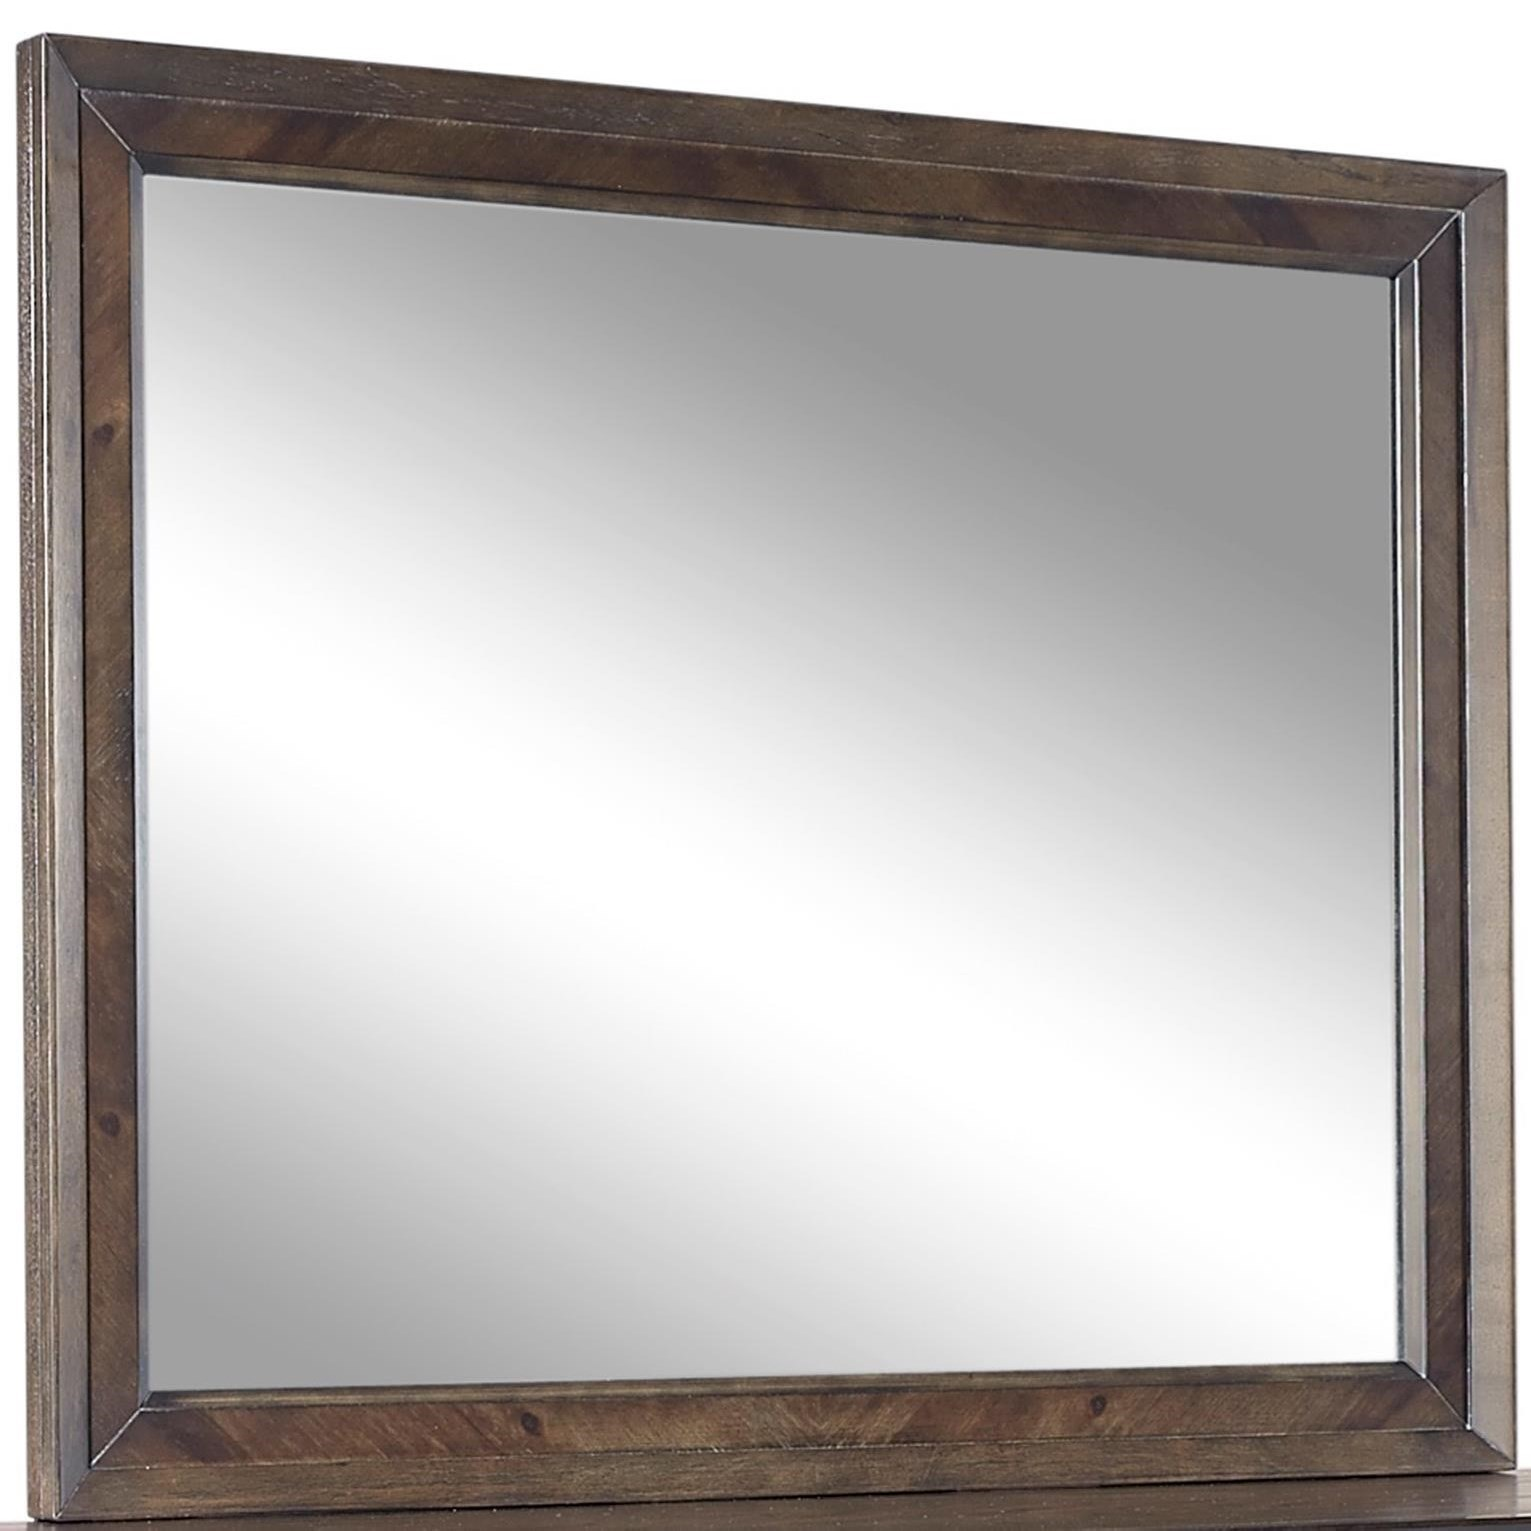 Aspenhome Harper Point Landscape Mirror  - Item Number: IHP-462